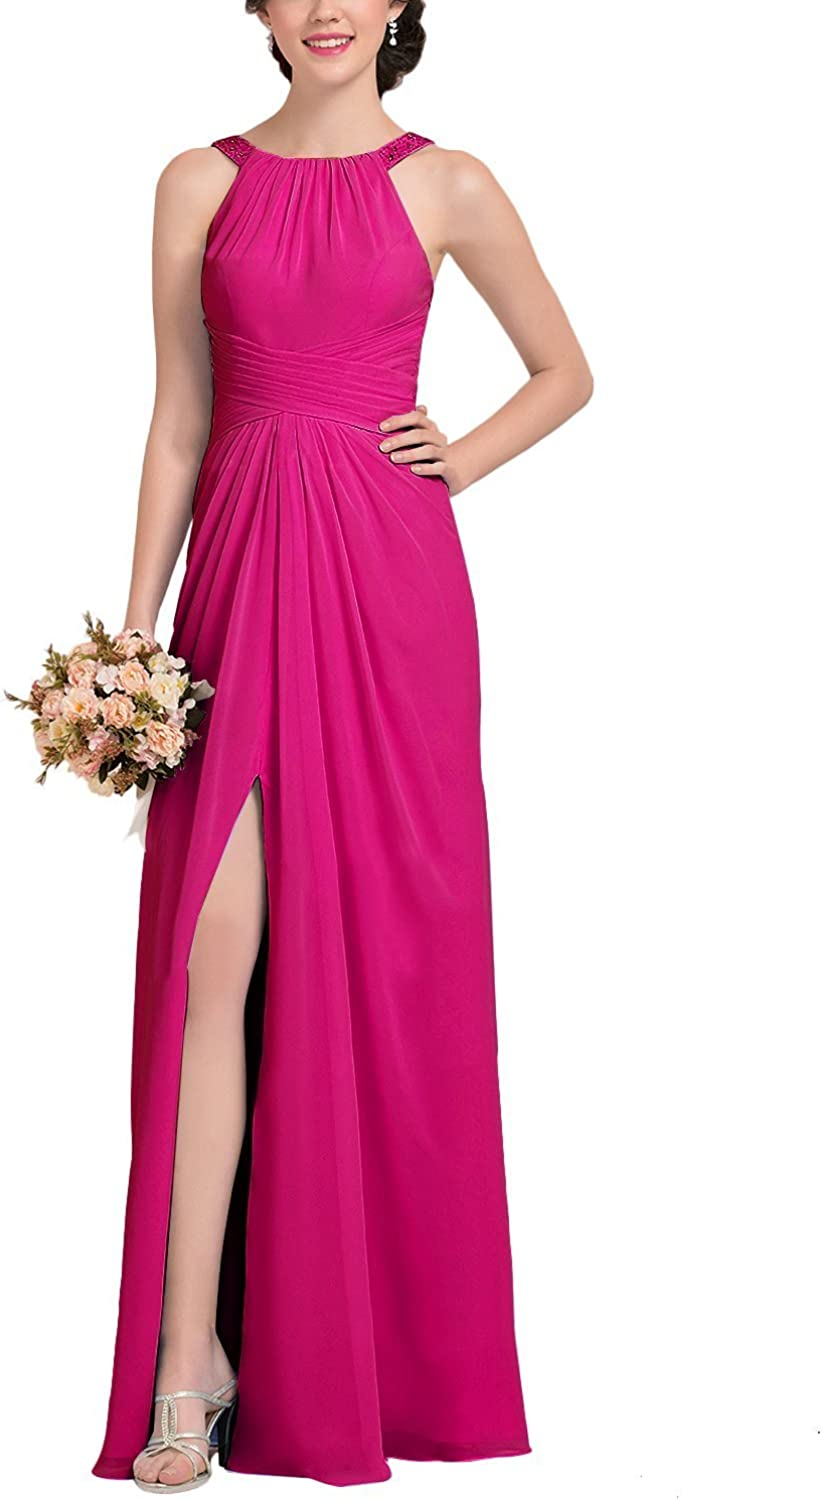 LiBridal Womens A line Halter Long Bridesmaid Dress Slit Backless Beaded Homecoming